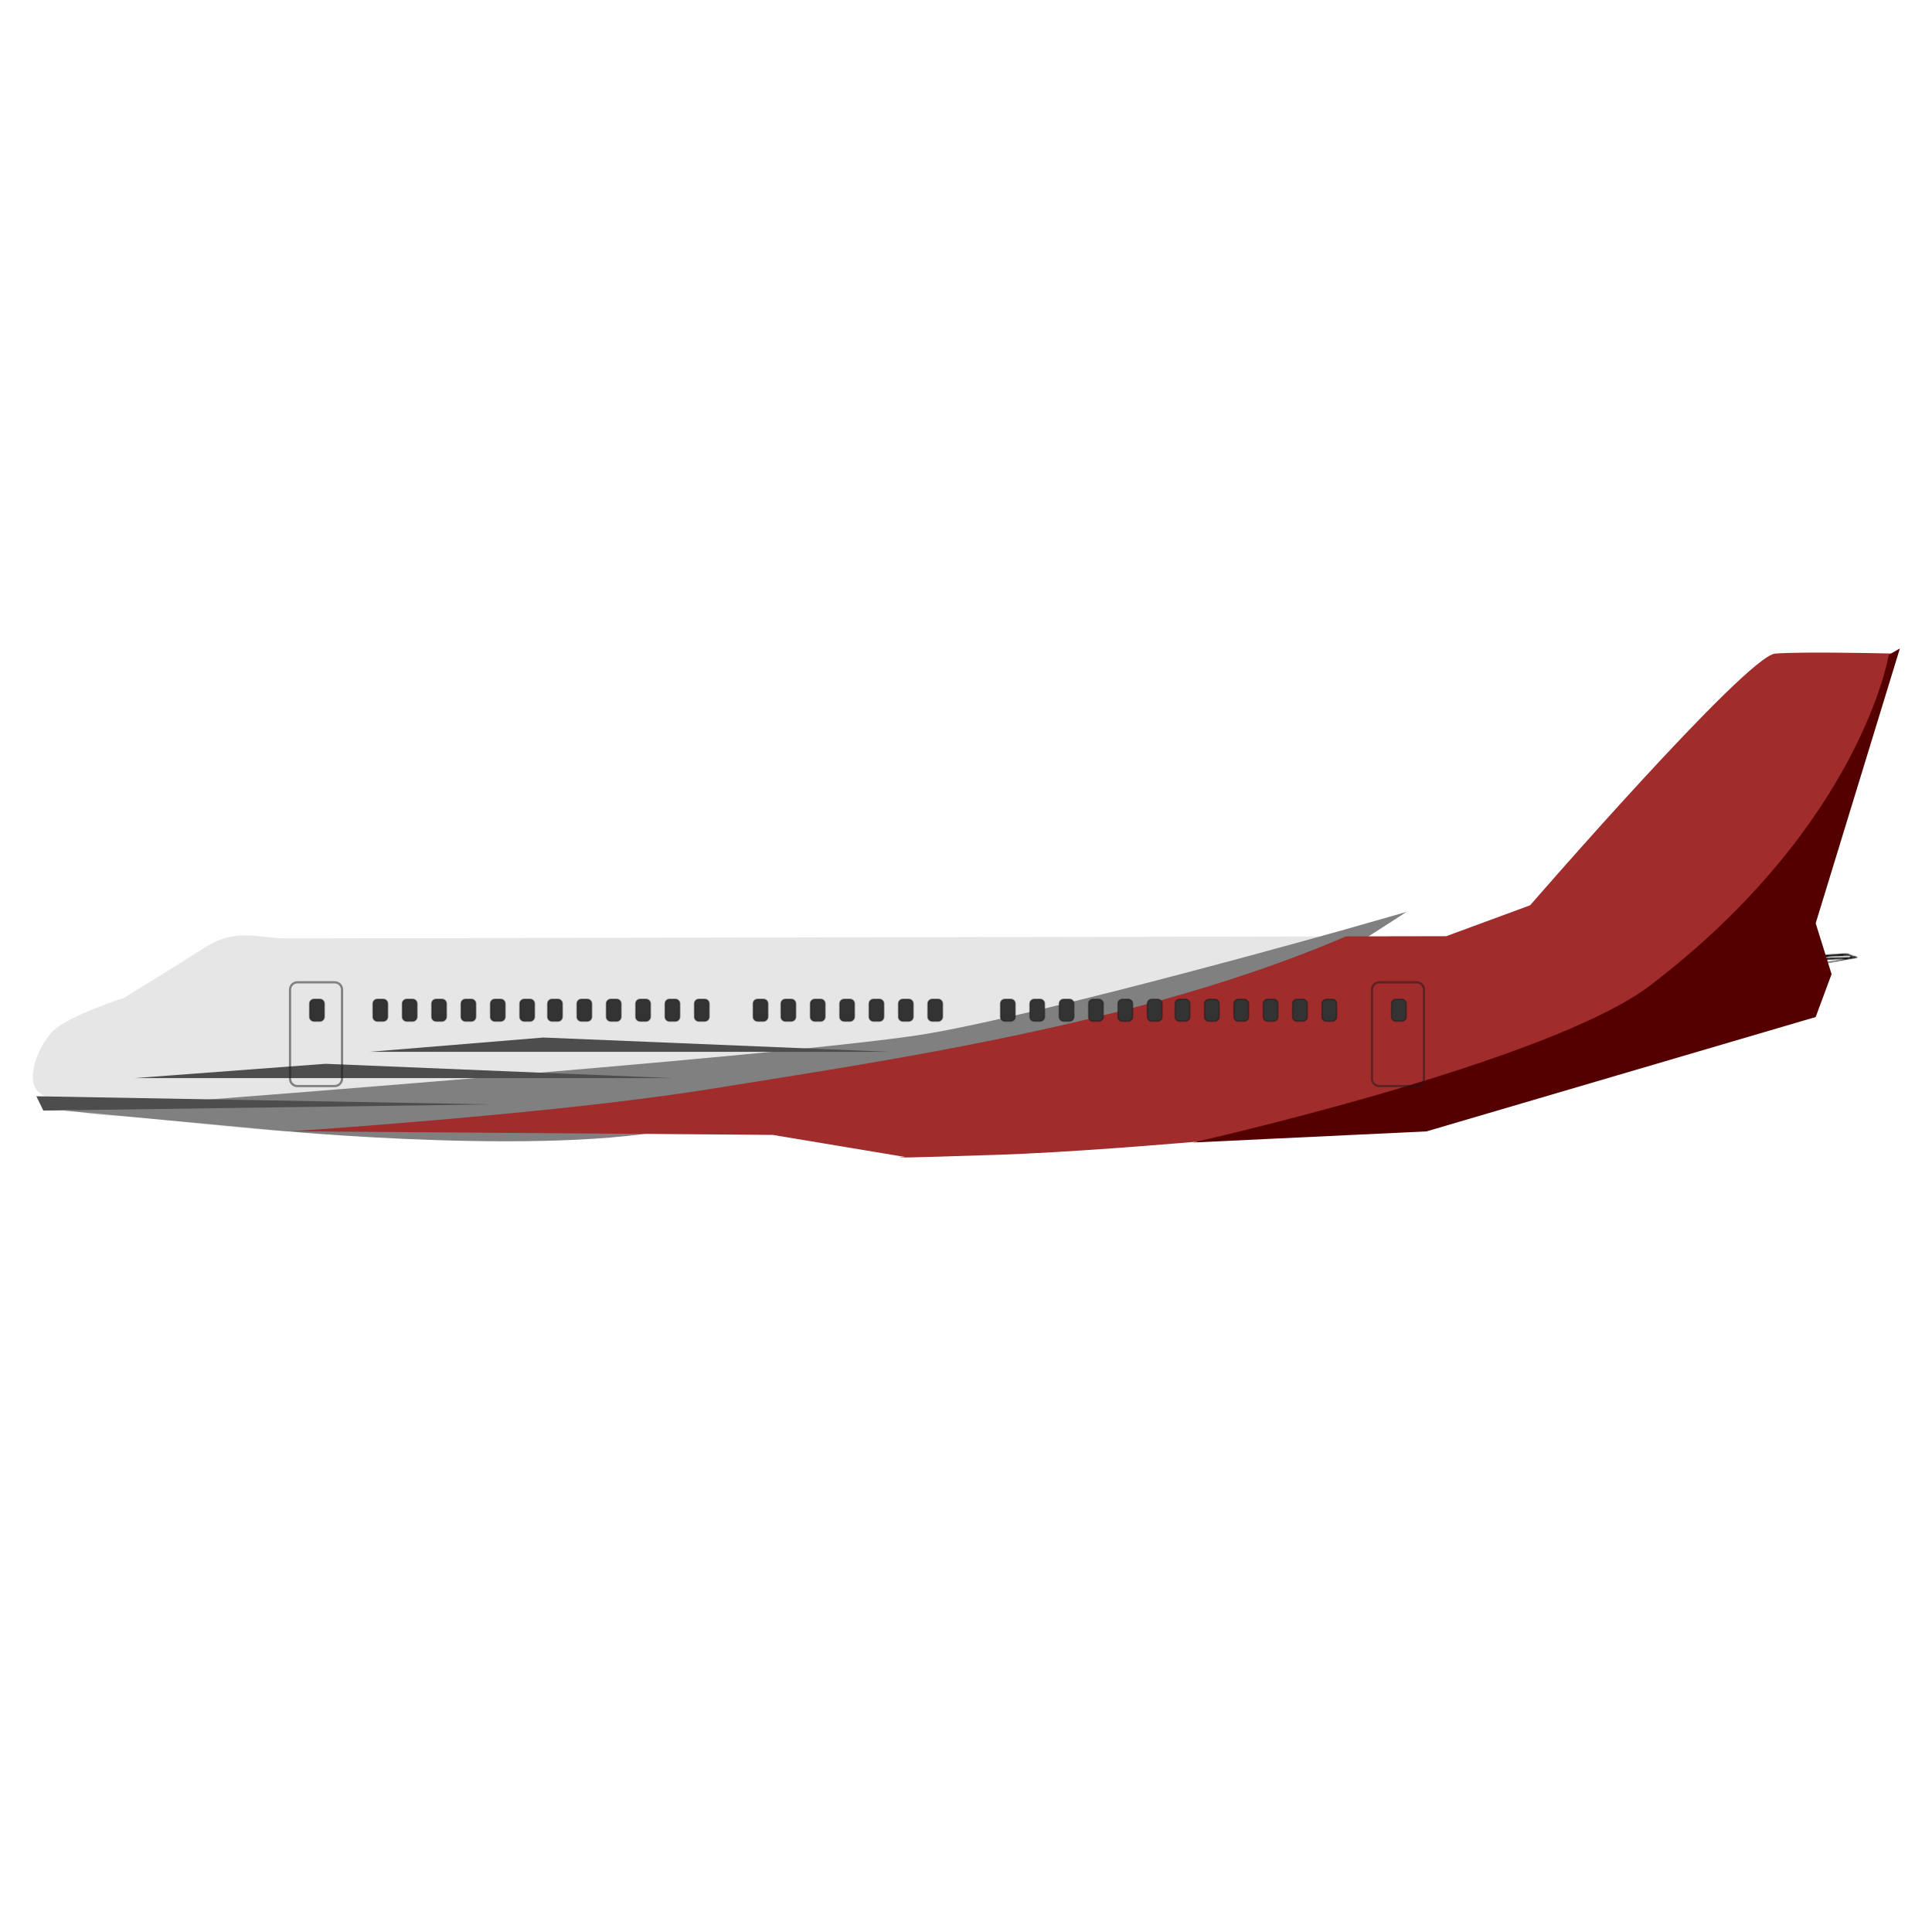 commercial jet concept 3d model 3ds fbx blend dae lwo obj 218332